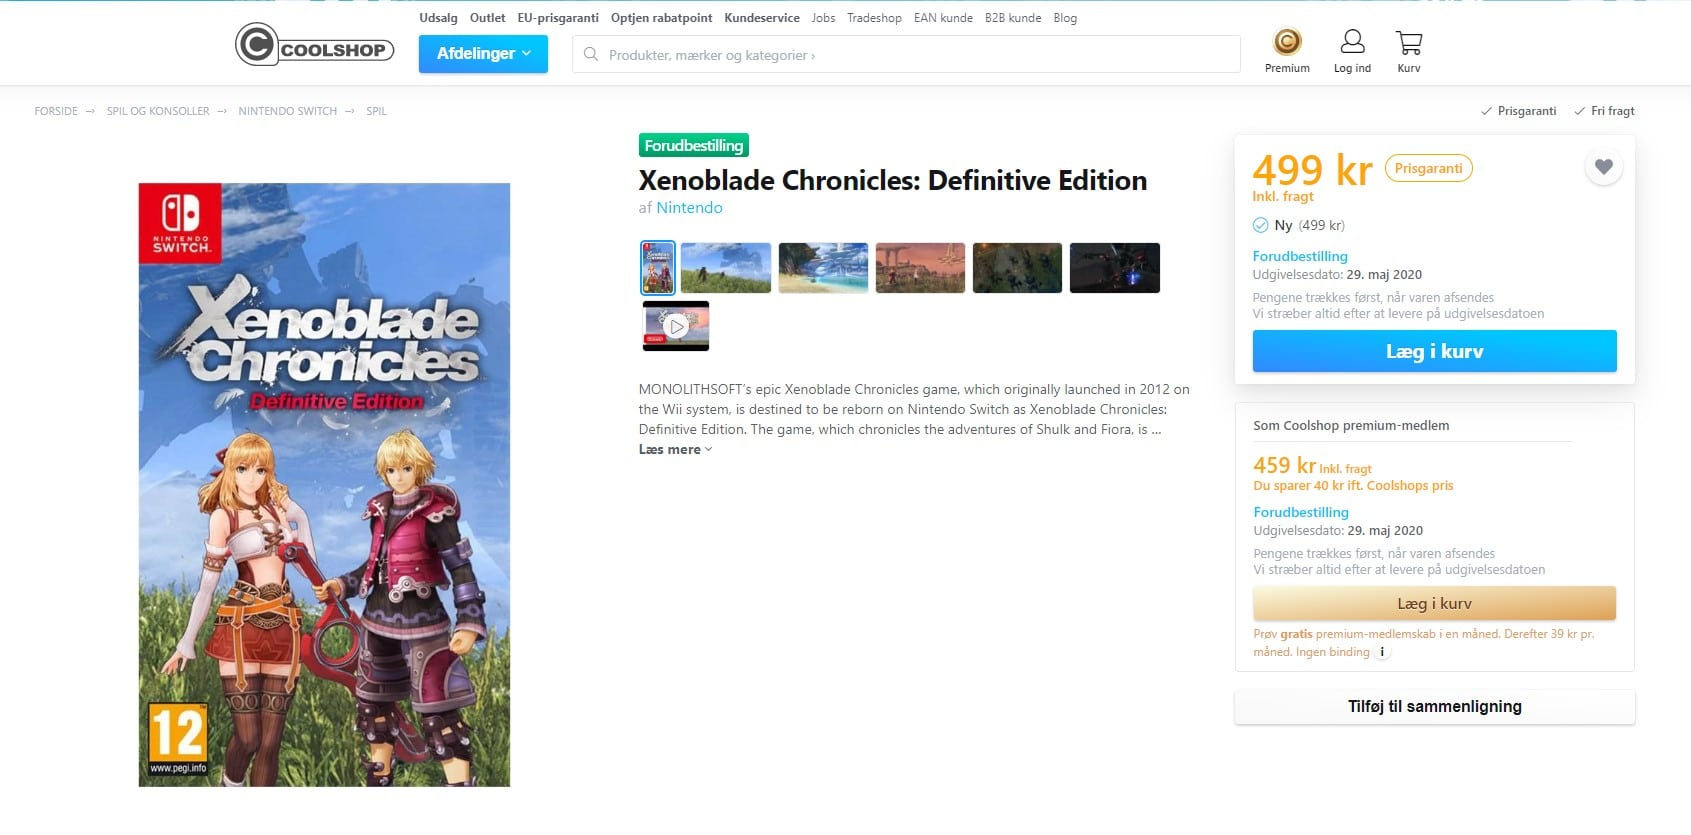 Xenoblade Chronicles: Definitive Edition date leak